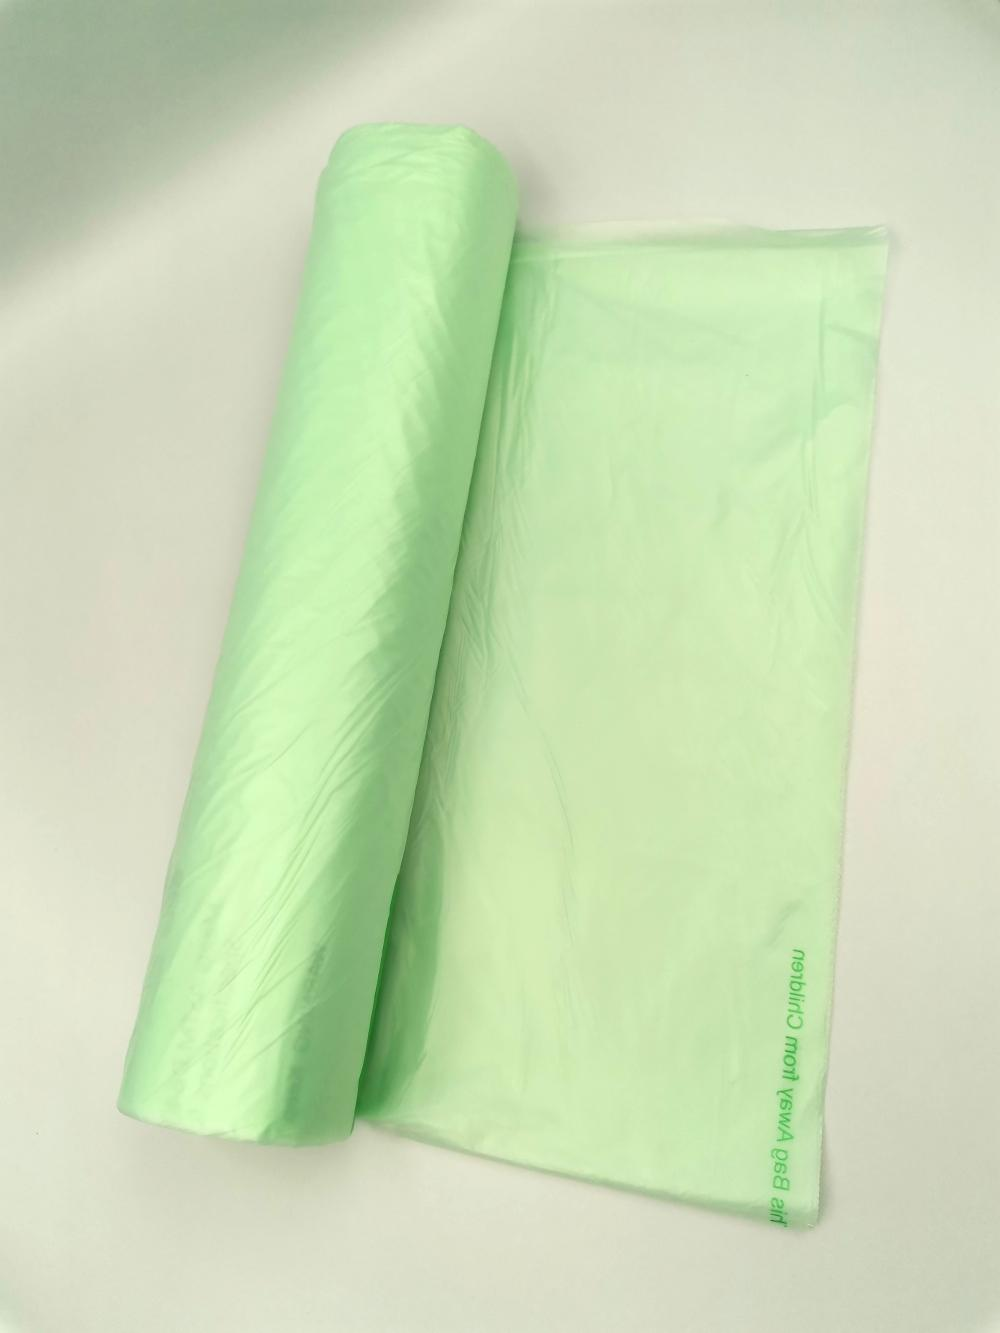 Bio-plastic Biodegradable Trash Bag